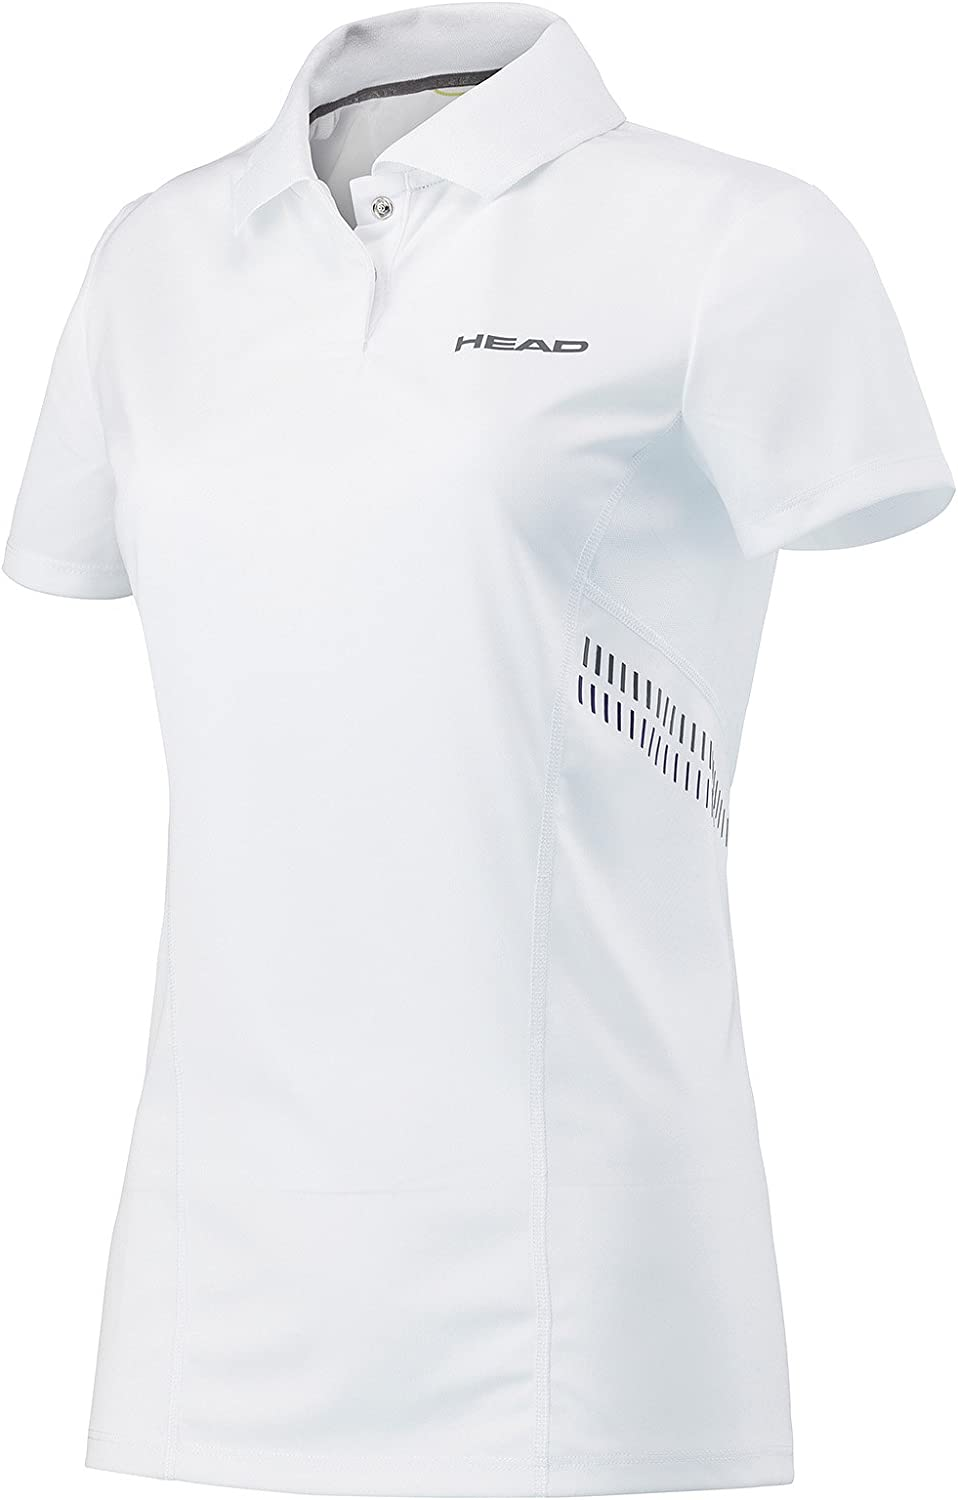 Head Club Technical - Camiseta Tipo Polo para Mujer: Amazon.es ...